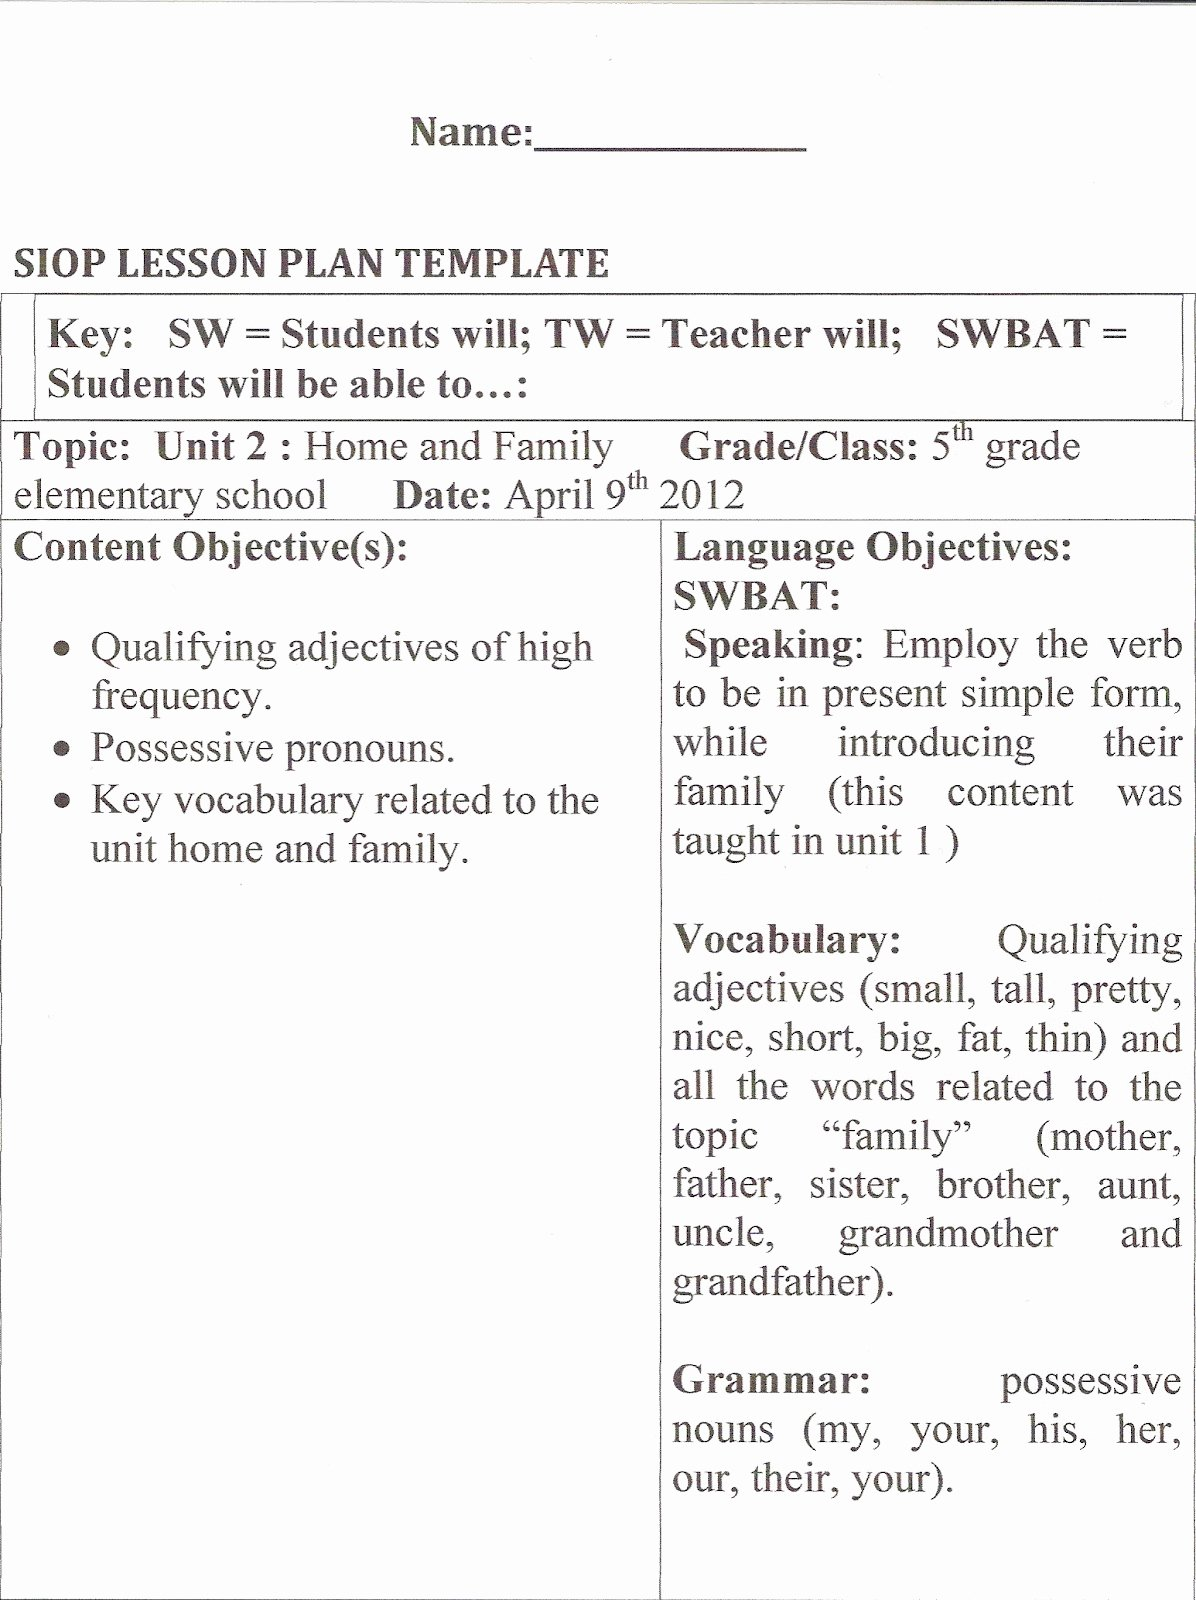 Siop Lesson Plan Template 2 Fresh Learning About Methodology Hands On Activities